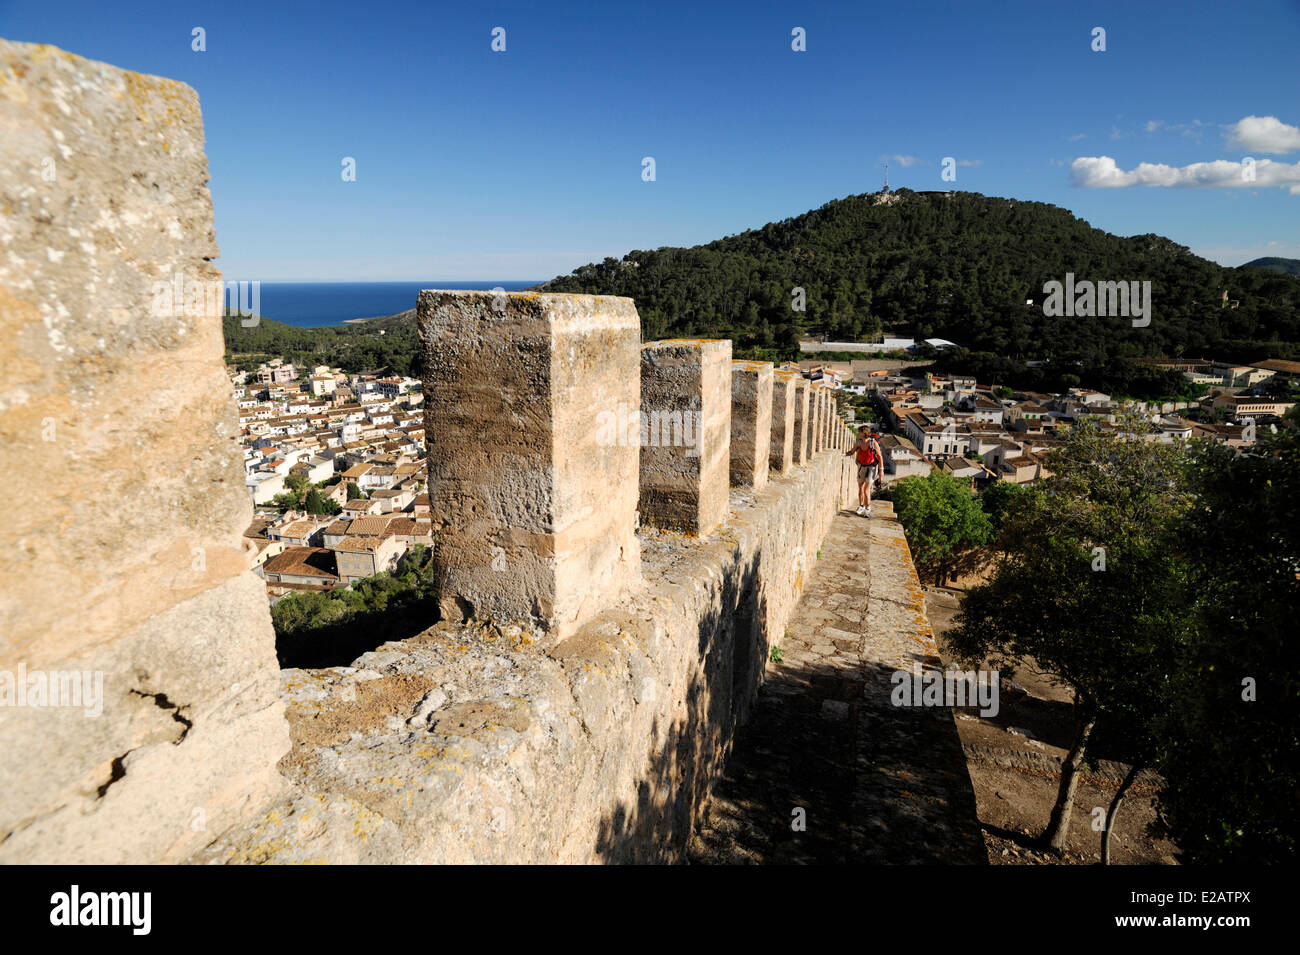 Spain, Balearic Islands, Mallorca, Capdepera, rampart walk of the castle - Stock Image